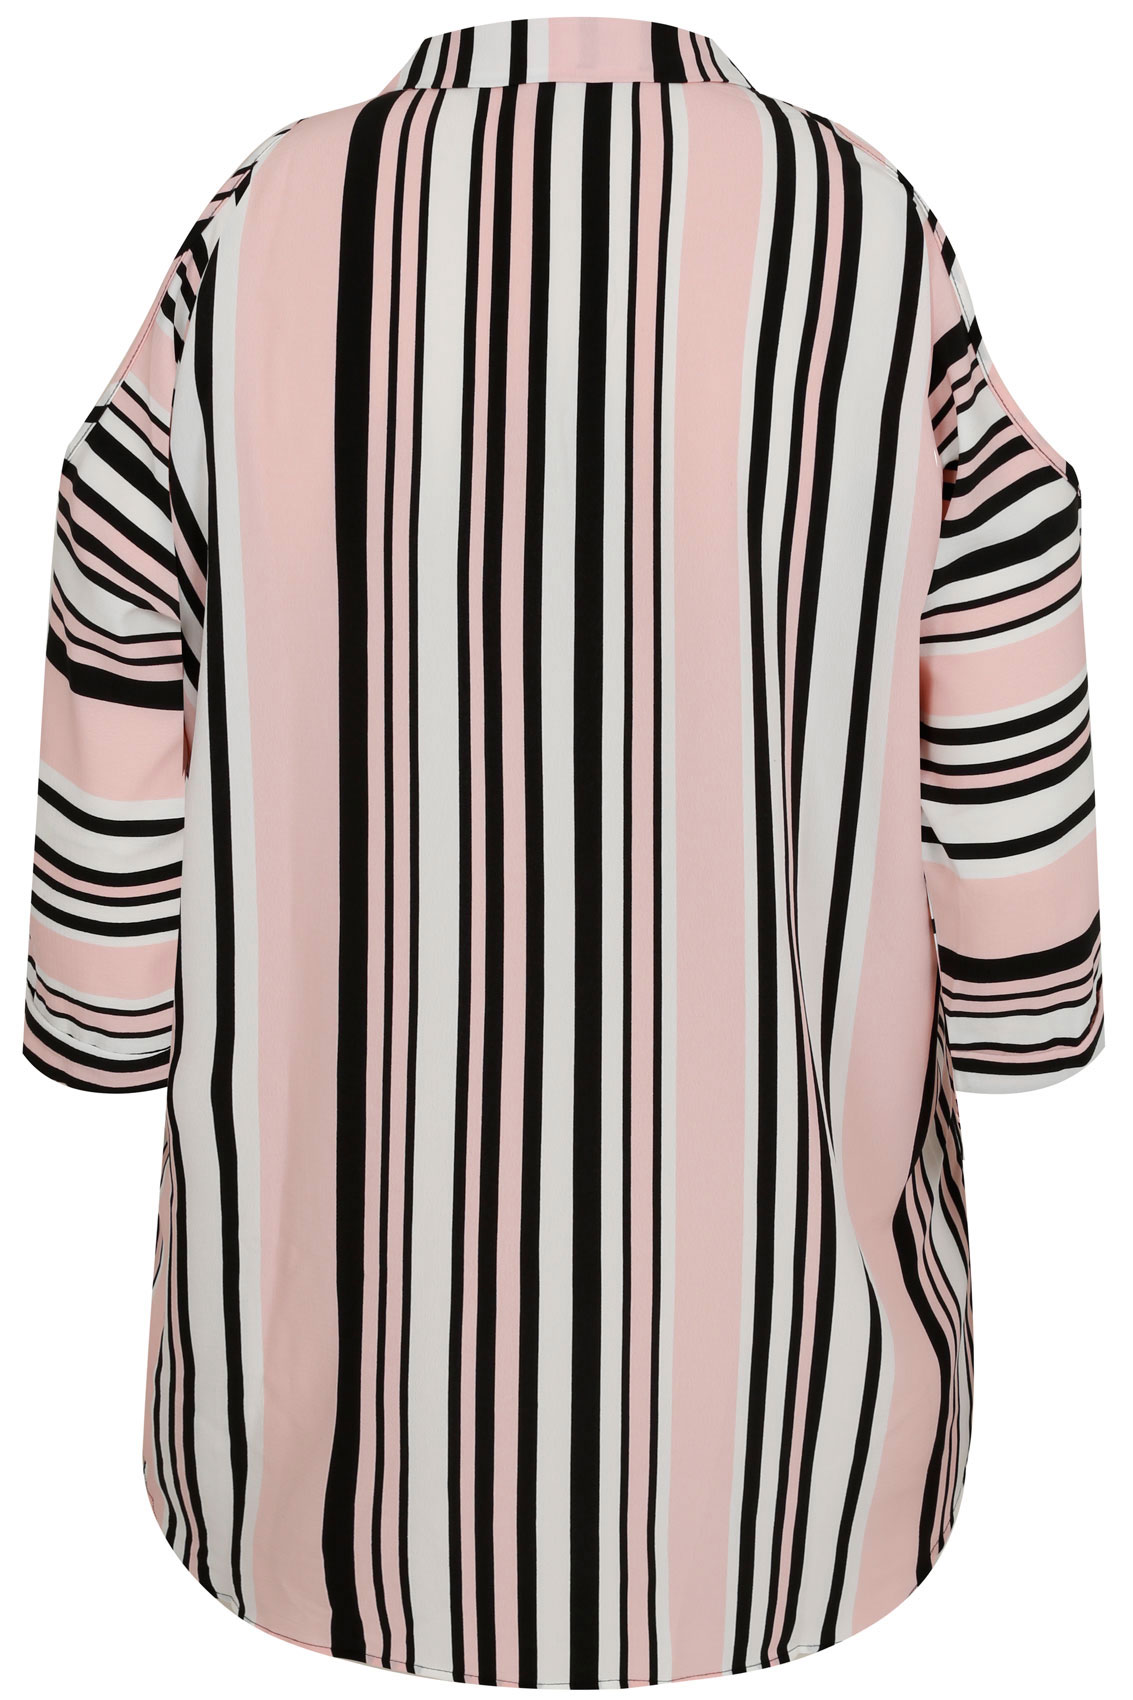 Black White Pink Striped Cold Shoulder Shirt Plus Size